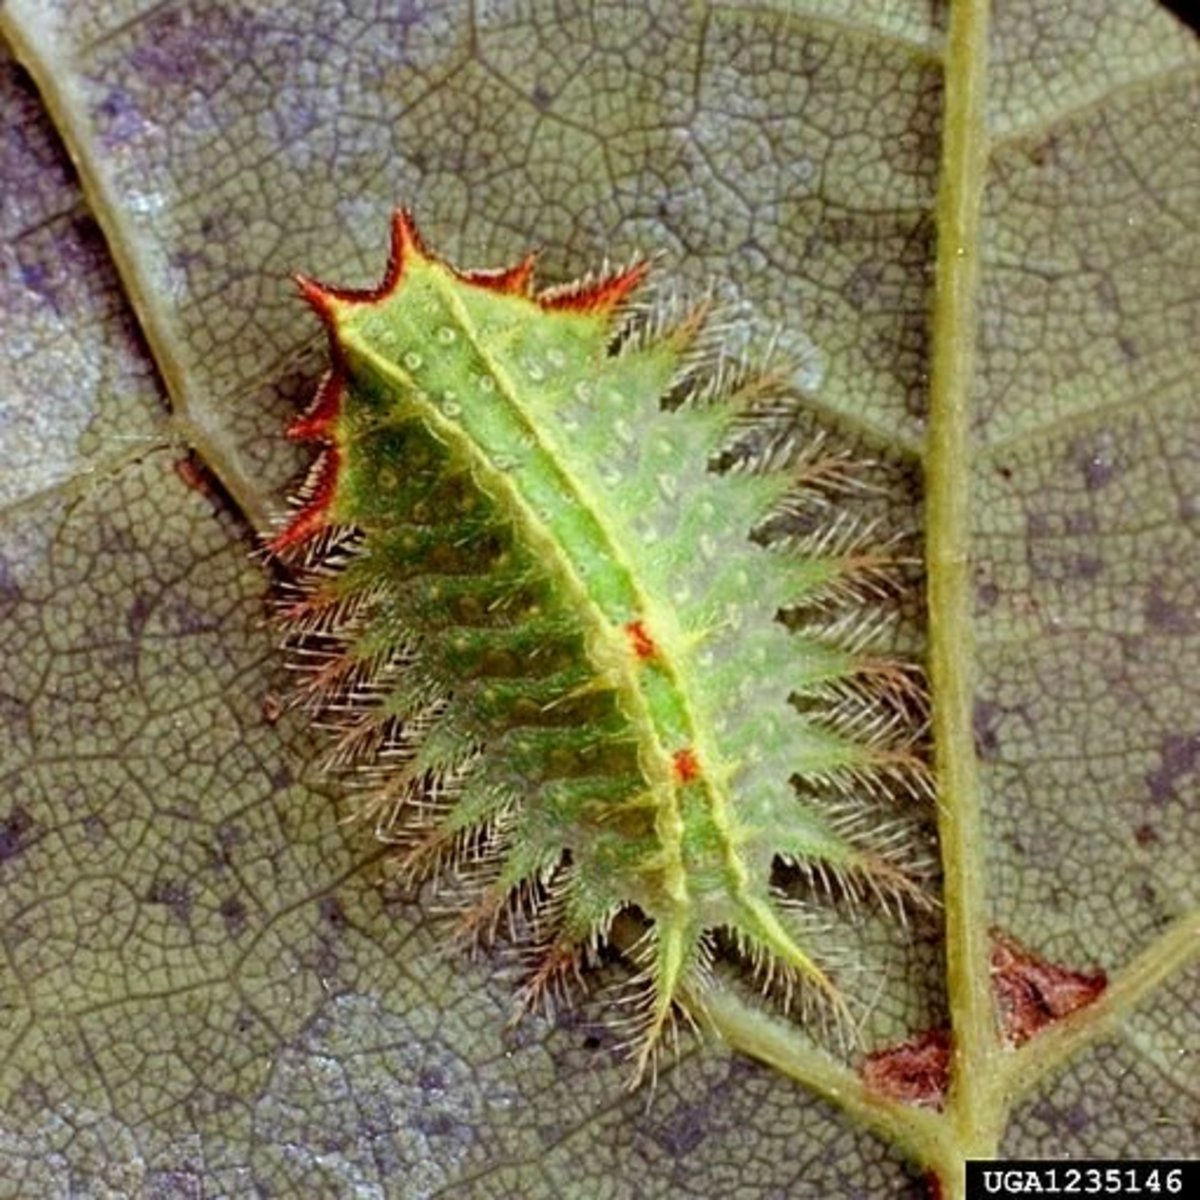 stinging-caterpillars